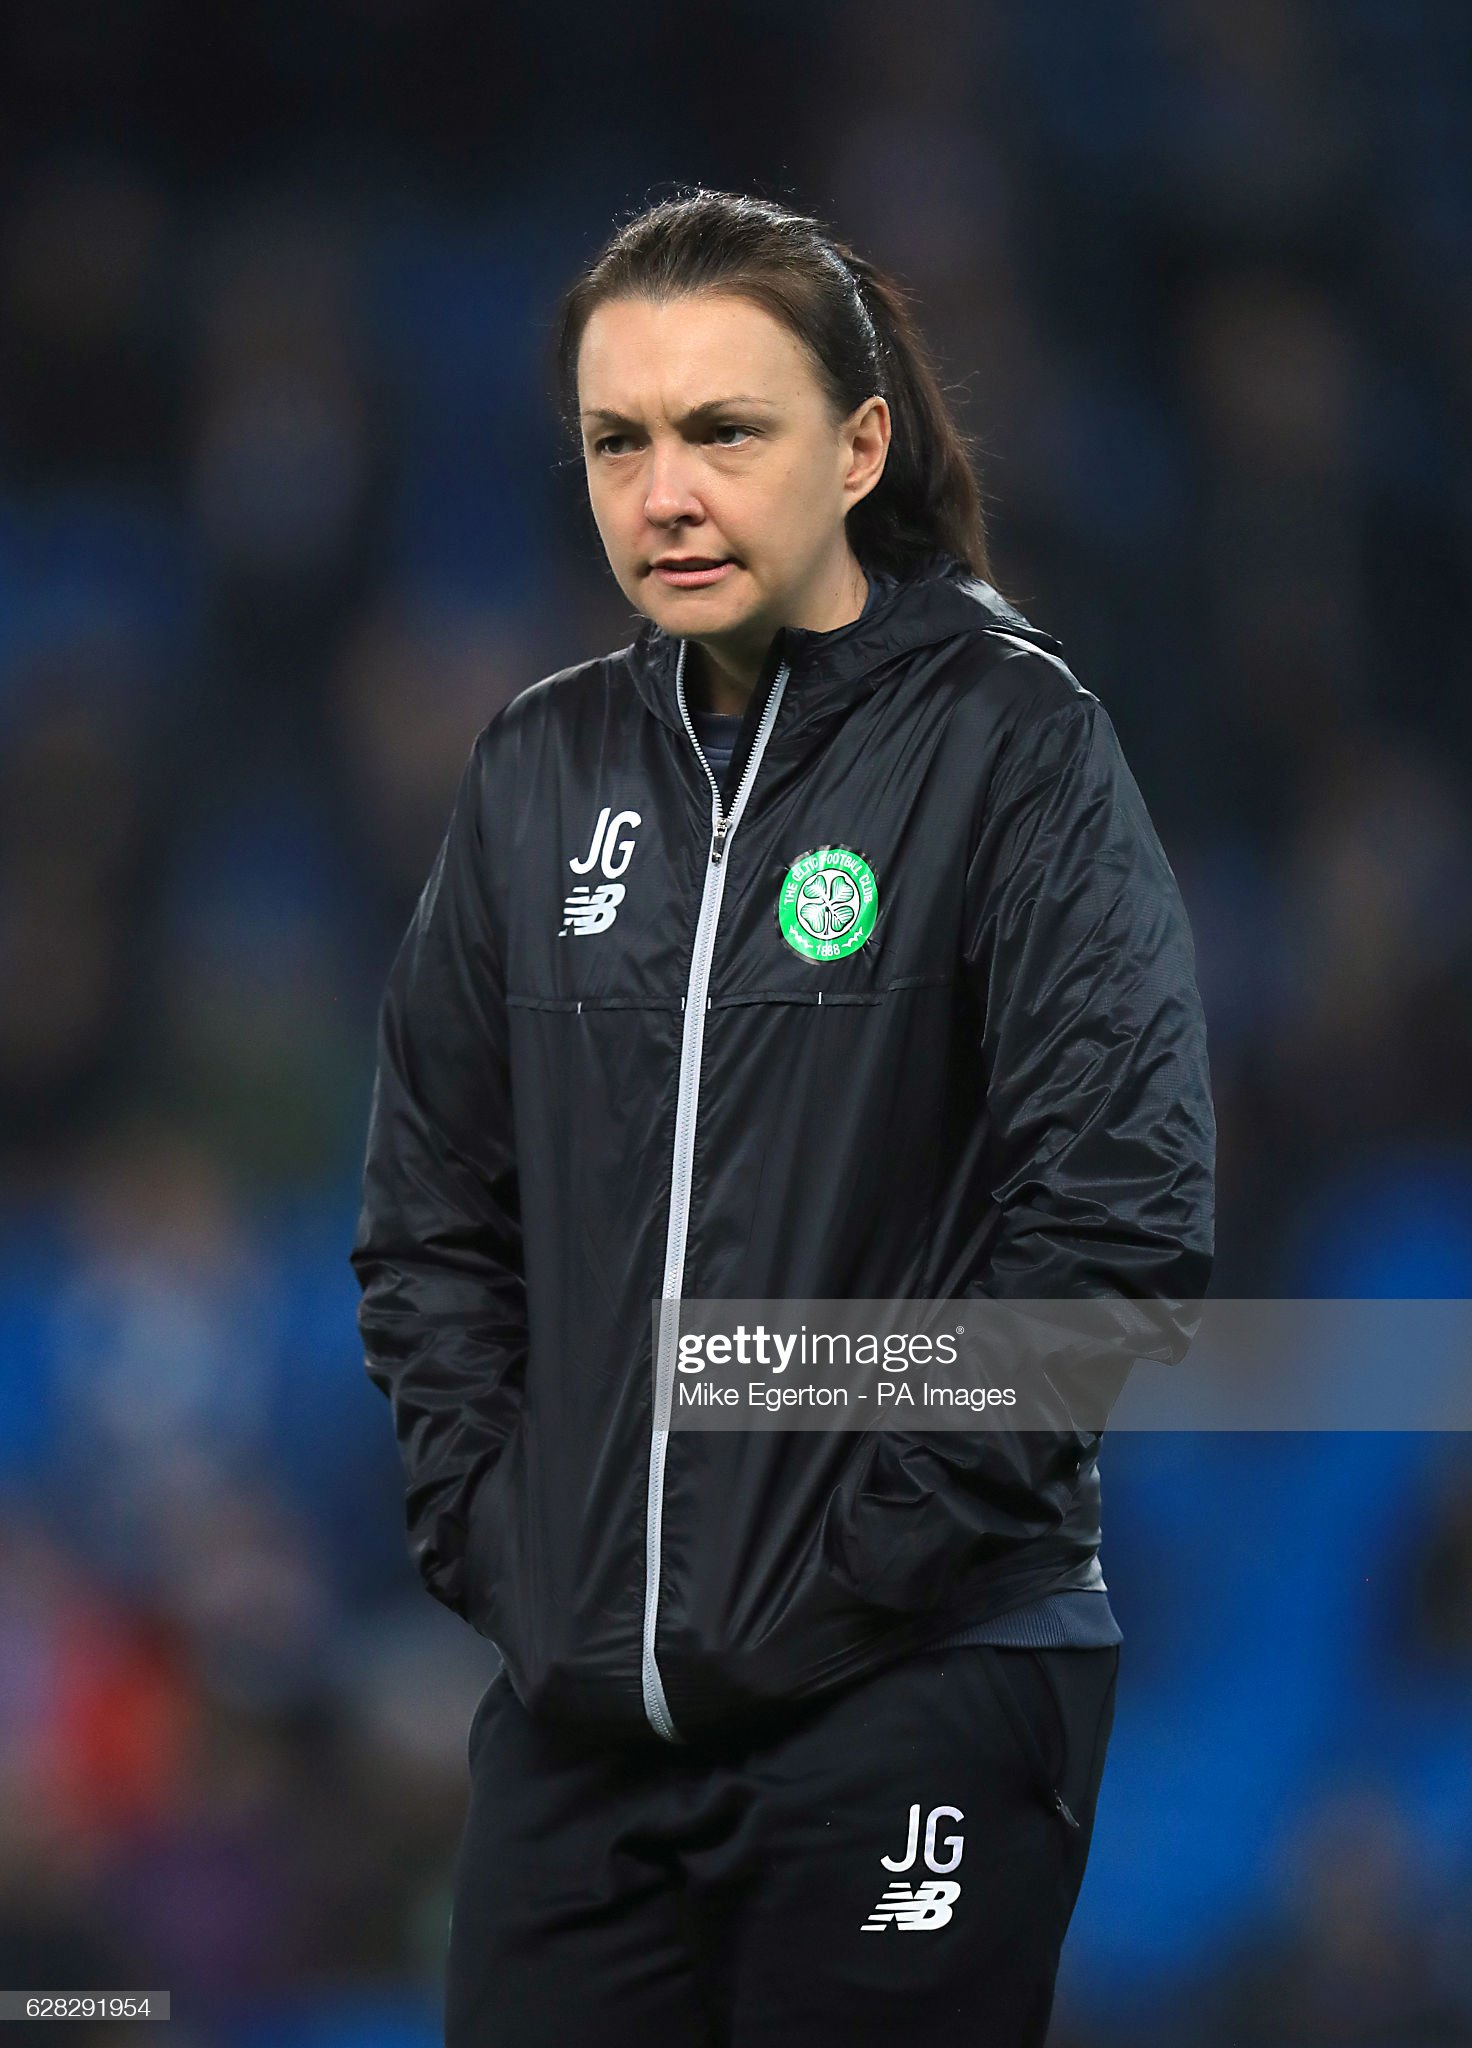 https://media.gettyimages.com/photos/celtic-first-team-physio-jennifer-graham-picture-id628291954?s=2048x2048